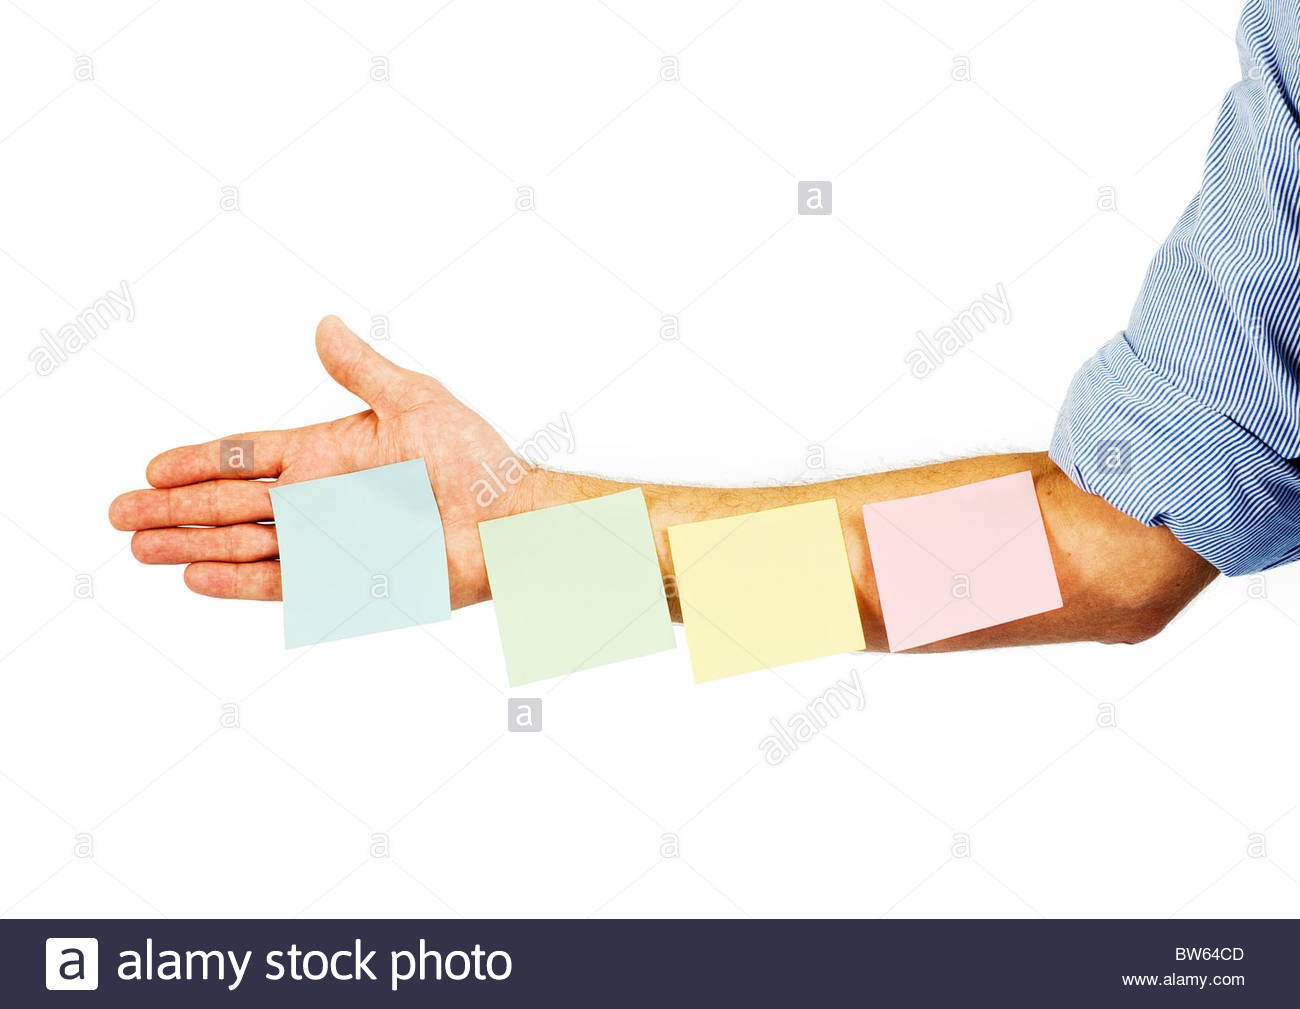 blank memo post it notes on arm stock photo royalty image blank memo post it notes on arm